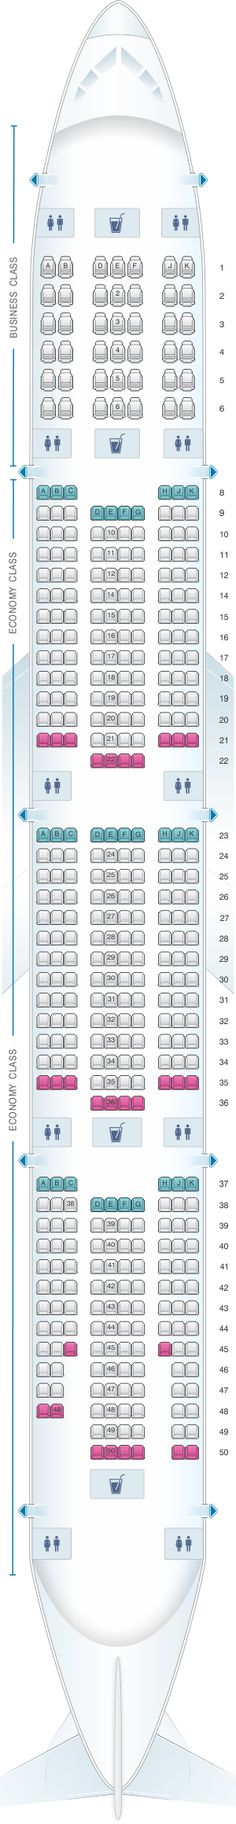 Seat Map Emirates Boeing B777 300ER two class